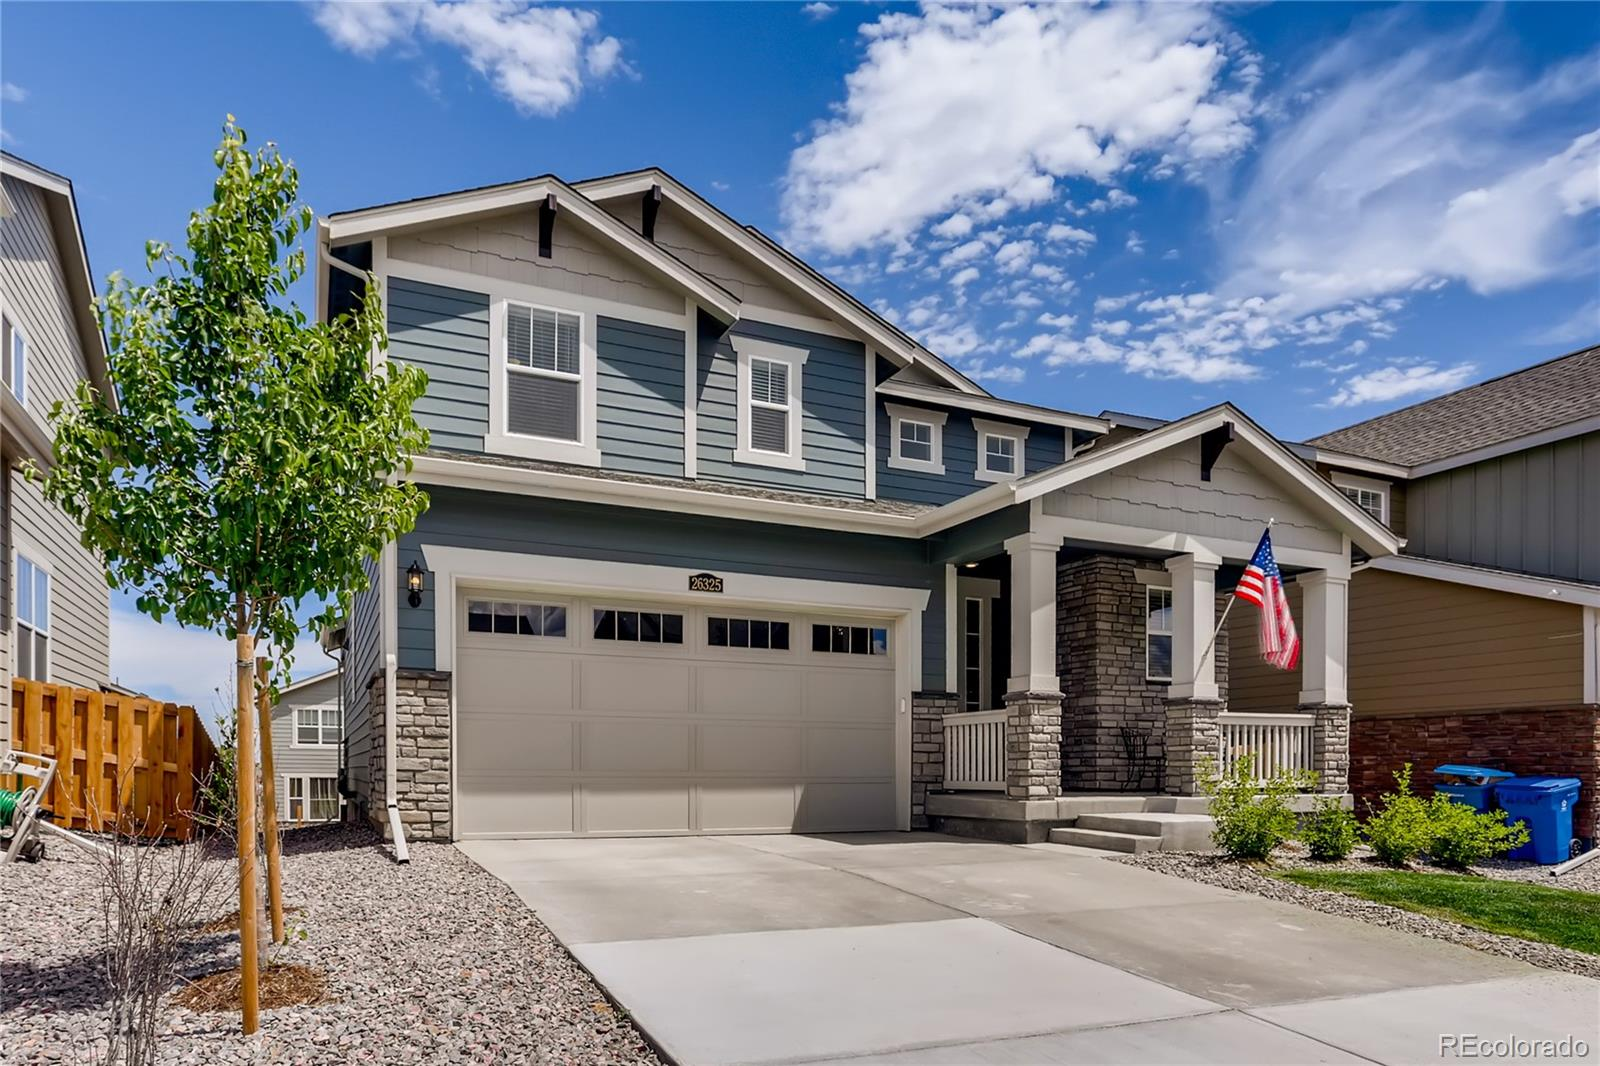 MLS# 2145354 - 3 - 26325 E Canal Place, Aurora, CO 80018